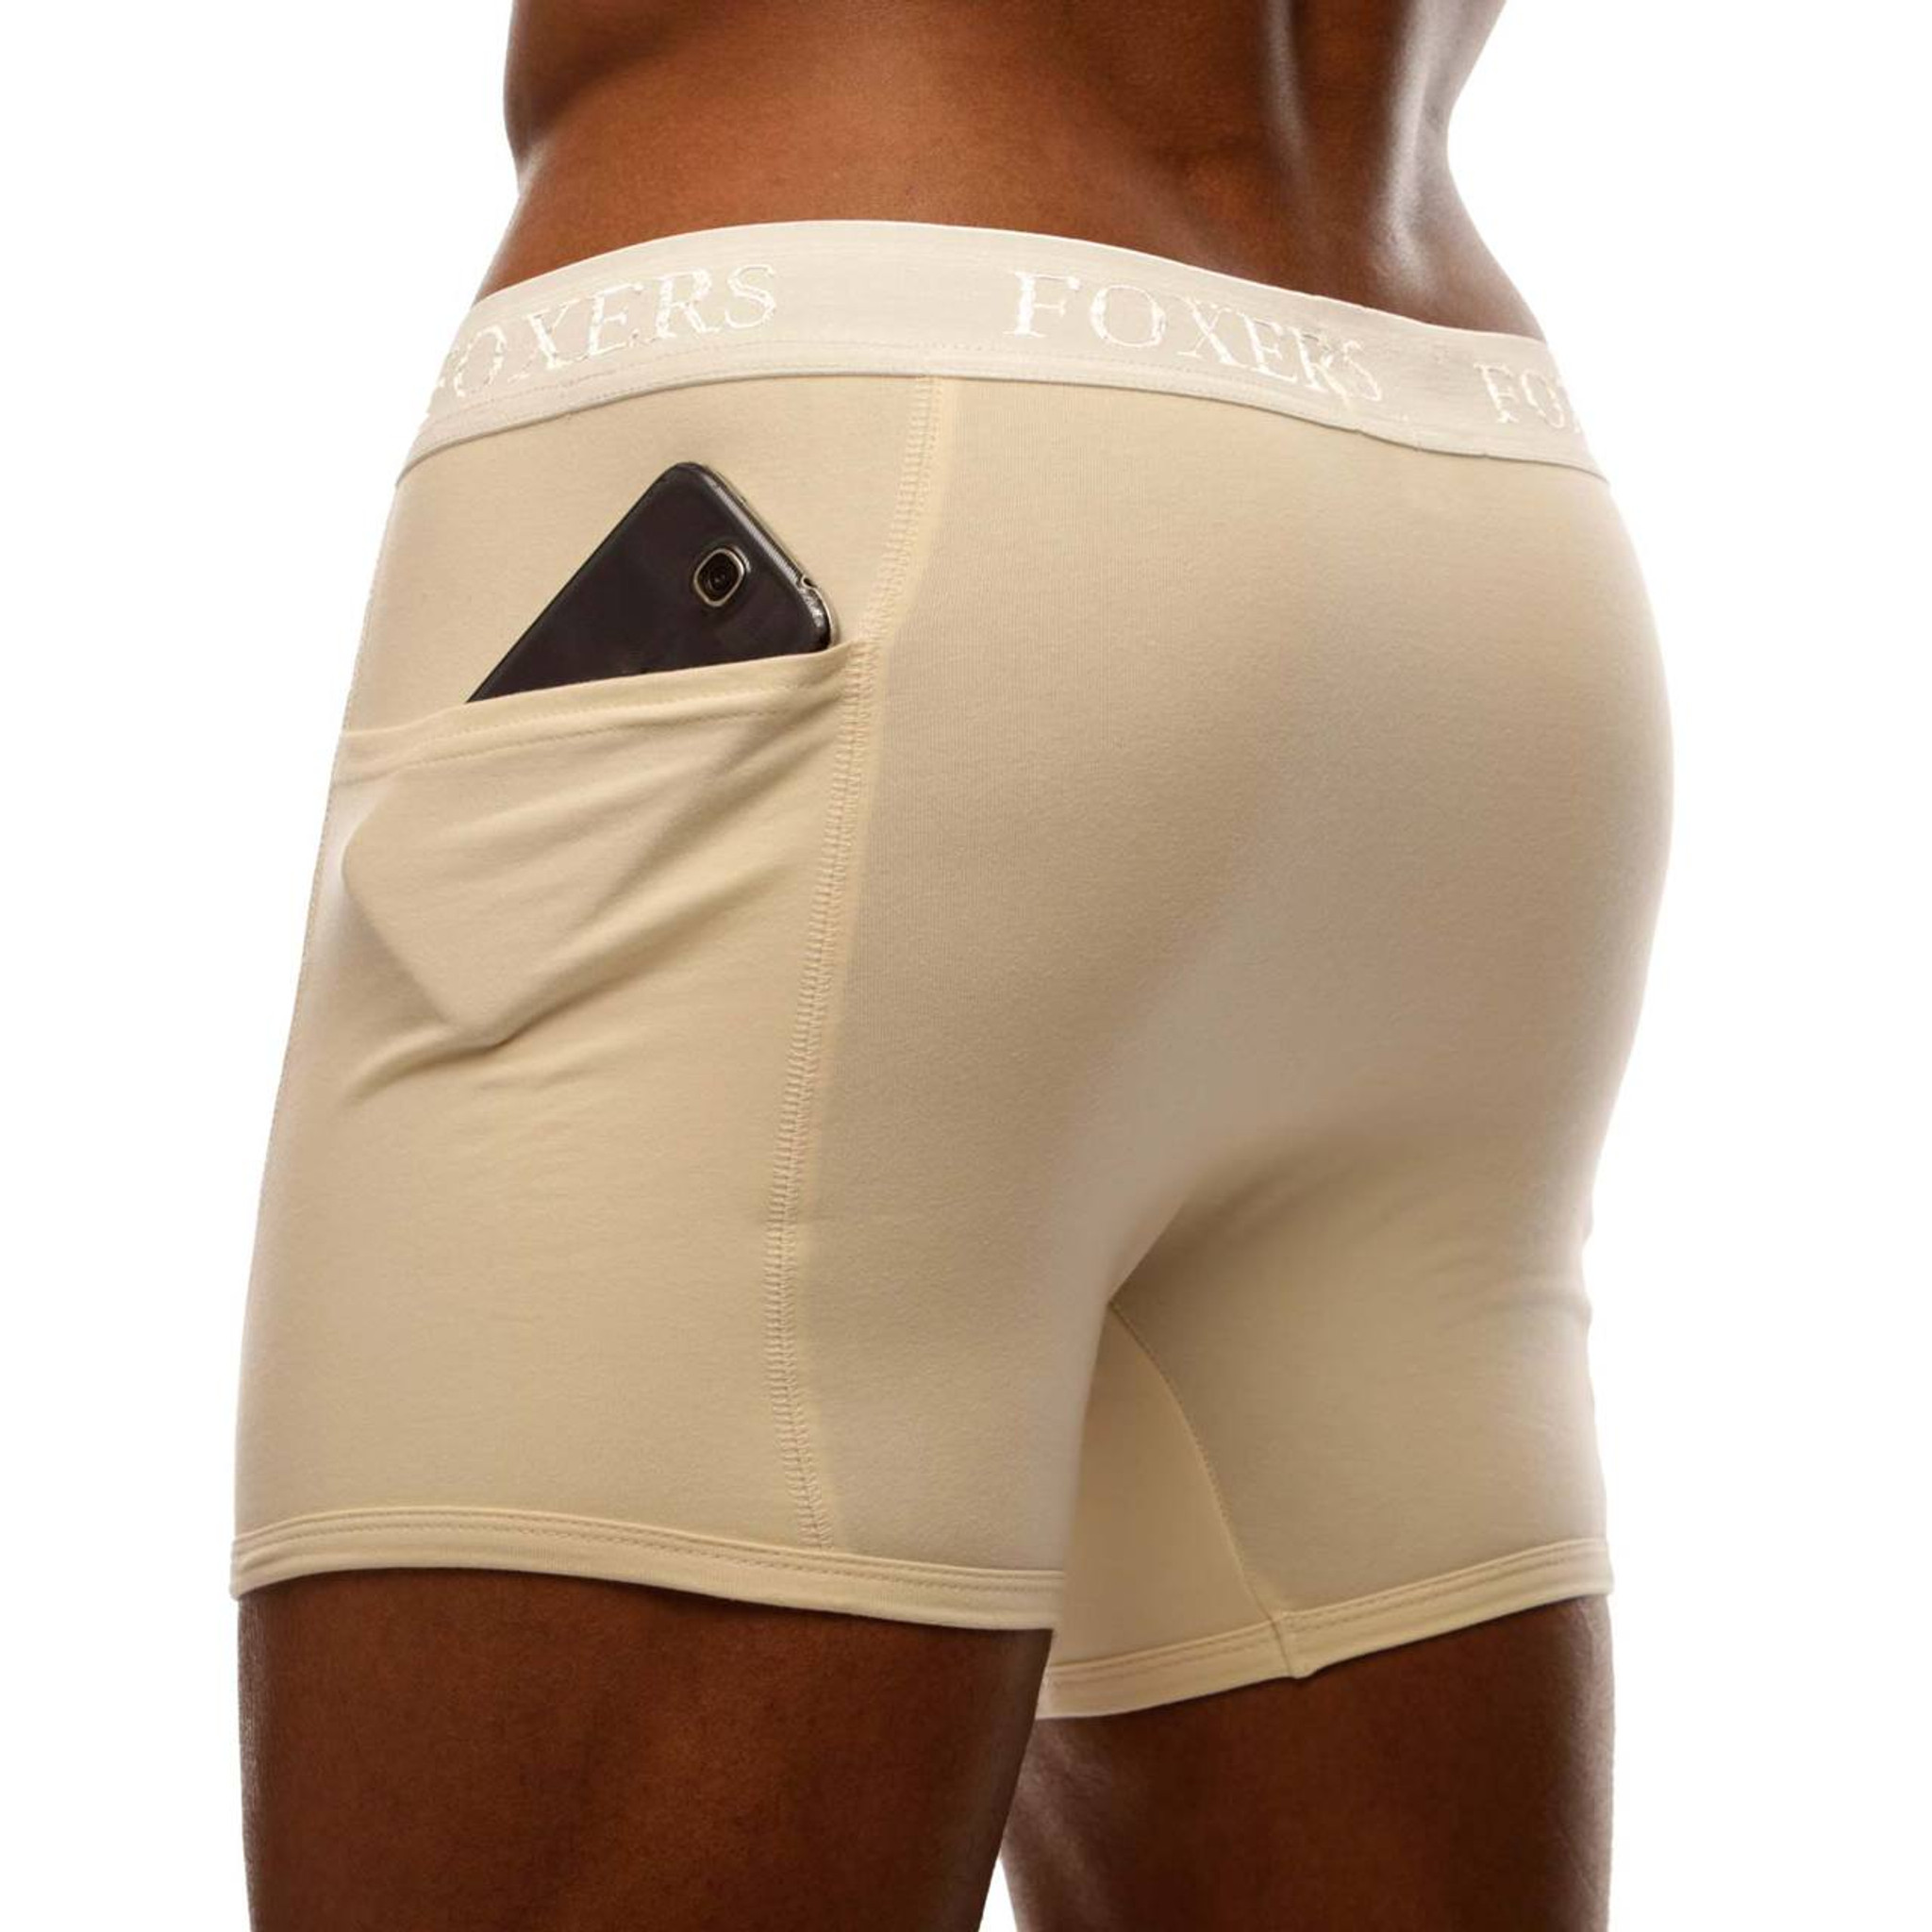 Mens Ivory Boxer Brief With Ivory Logo Foxers Waistband-9418